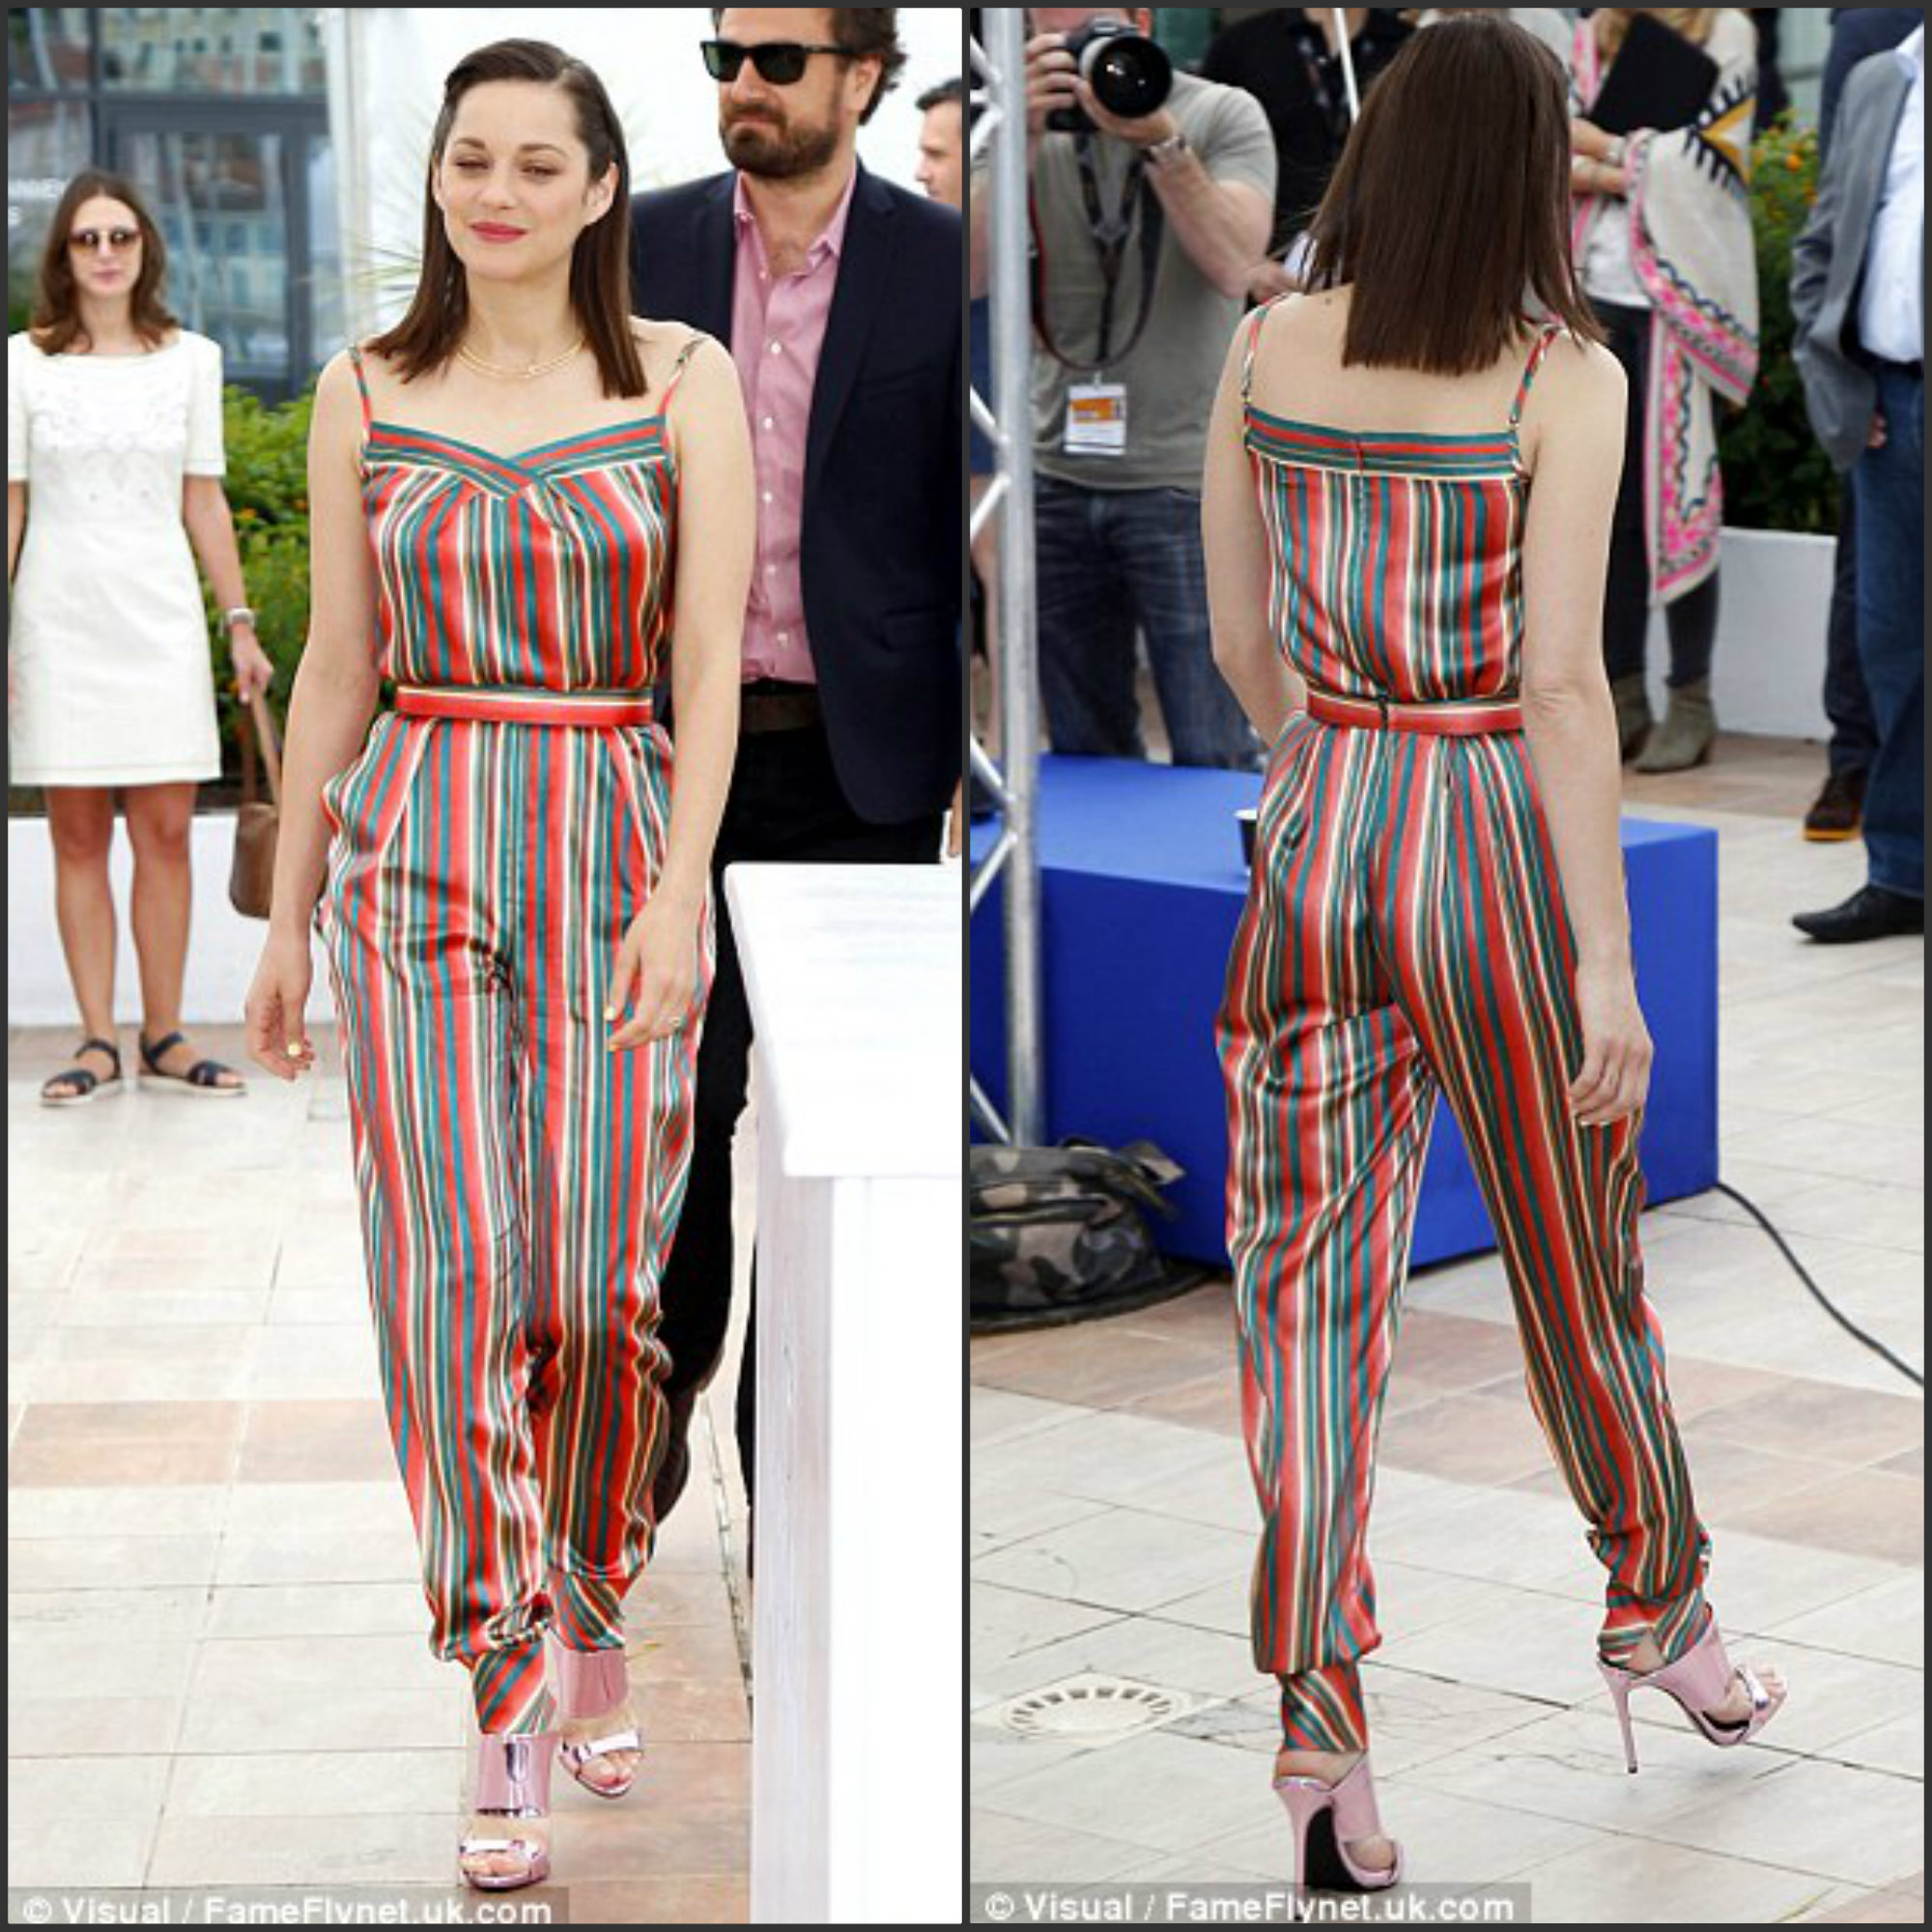 marion-cotillard-in-ulyana-sergeenko-couture-at-macbeth-68th-cannes-film-festival-photocall